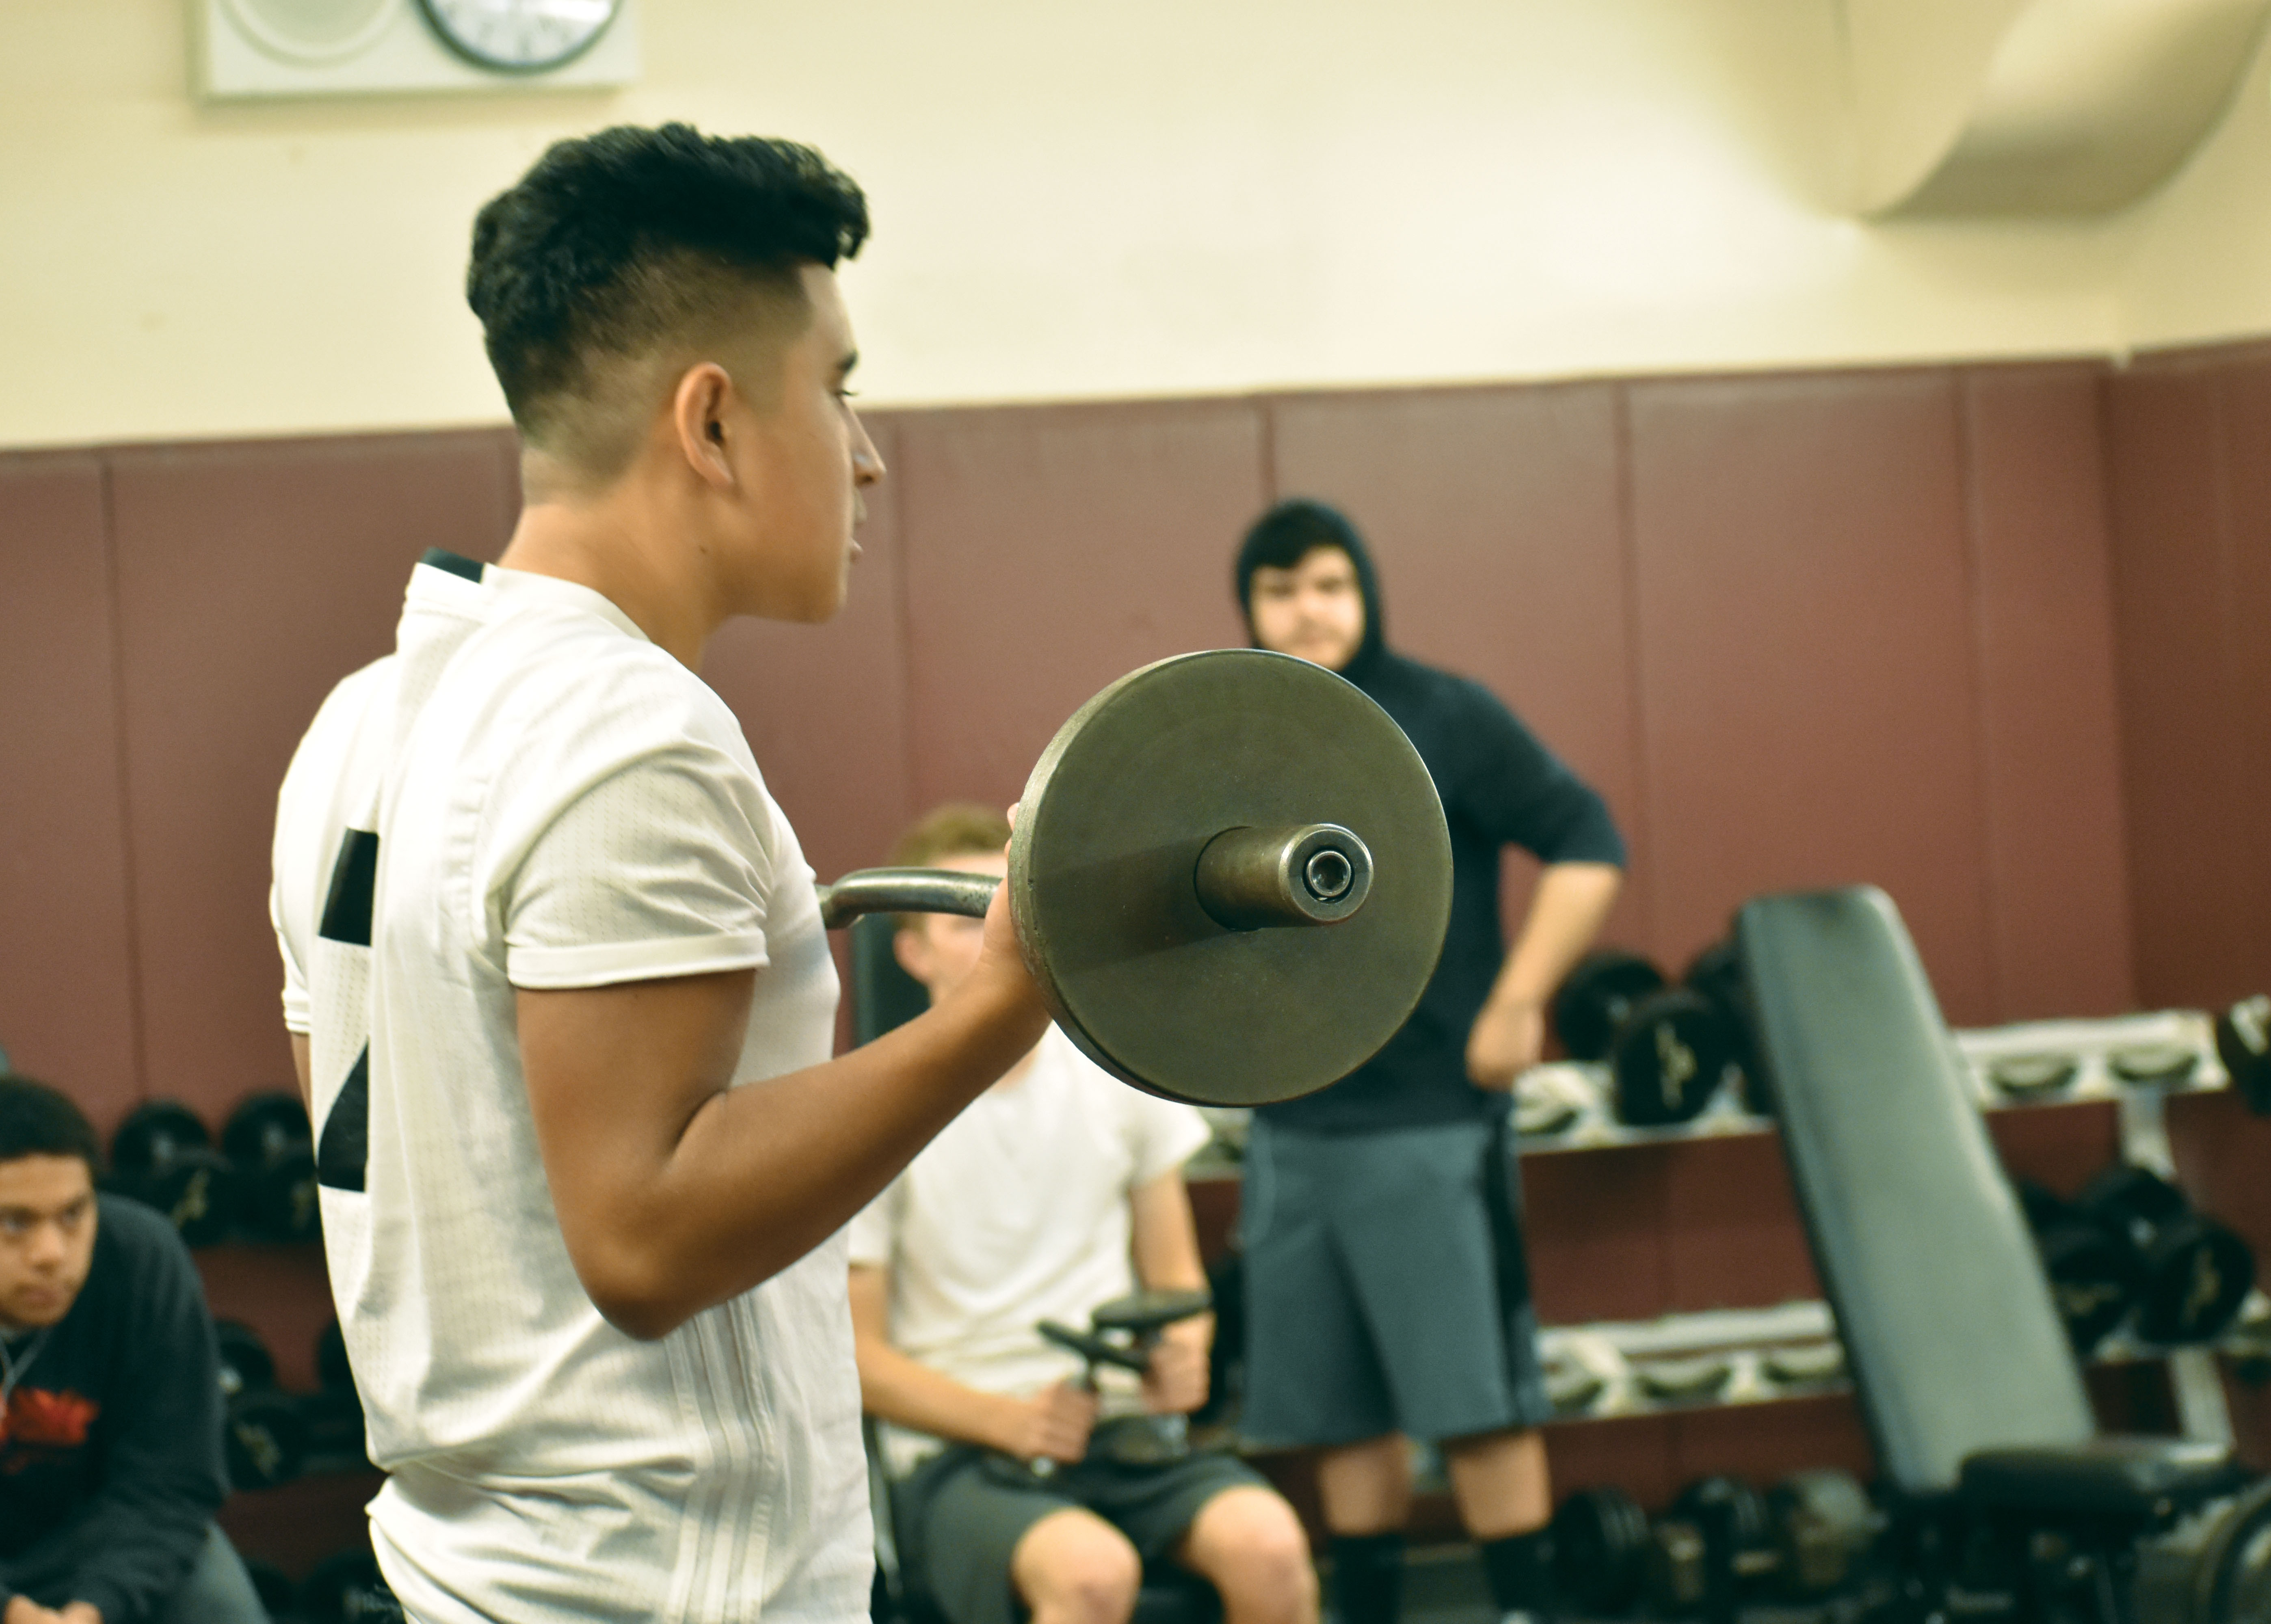 A look at the relationship between weightlifting and teen growth